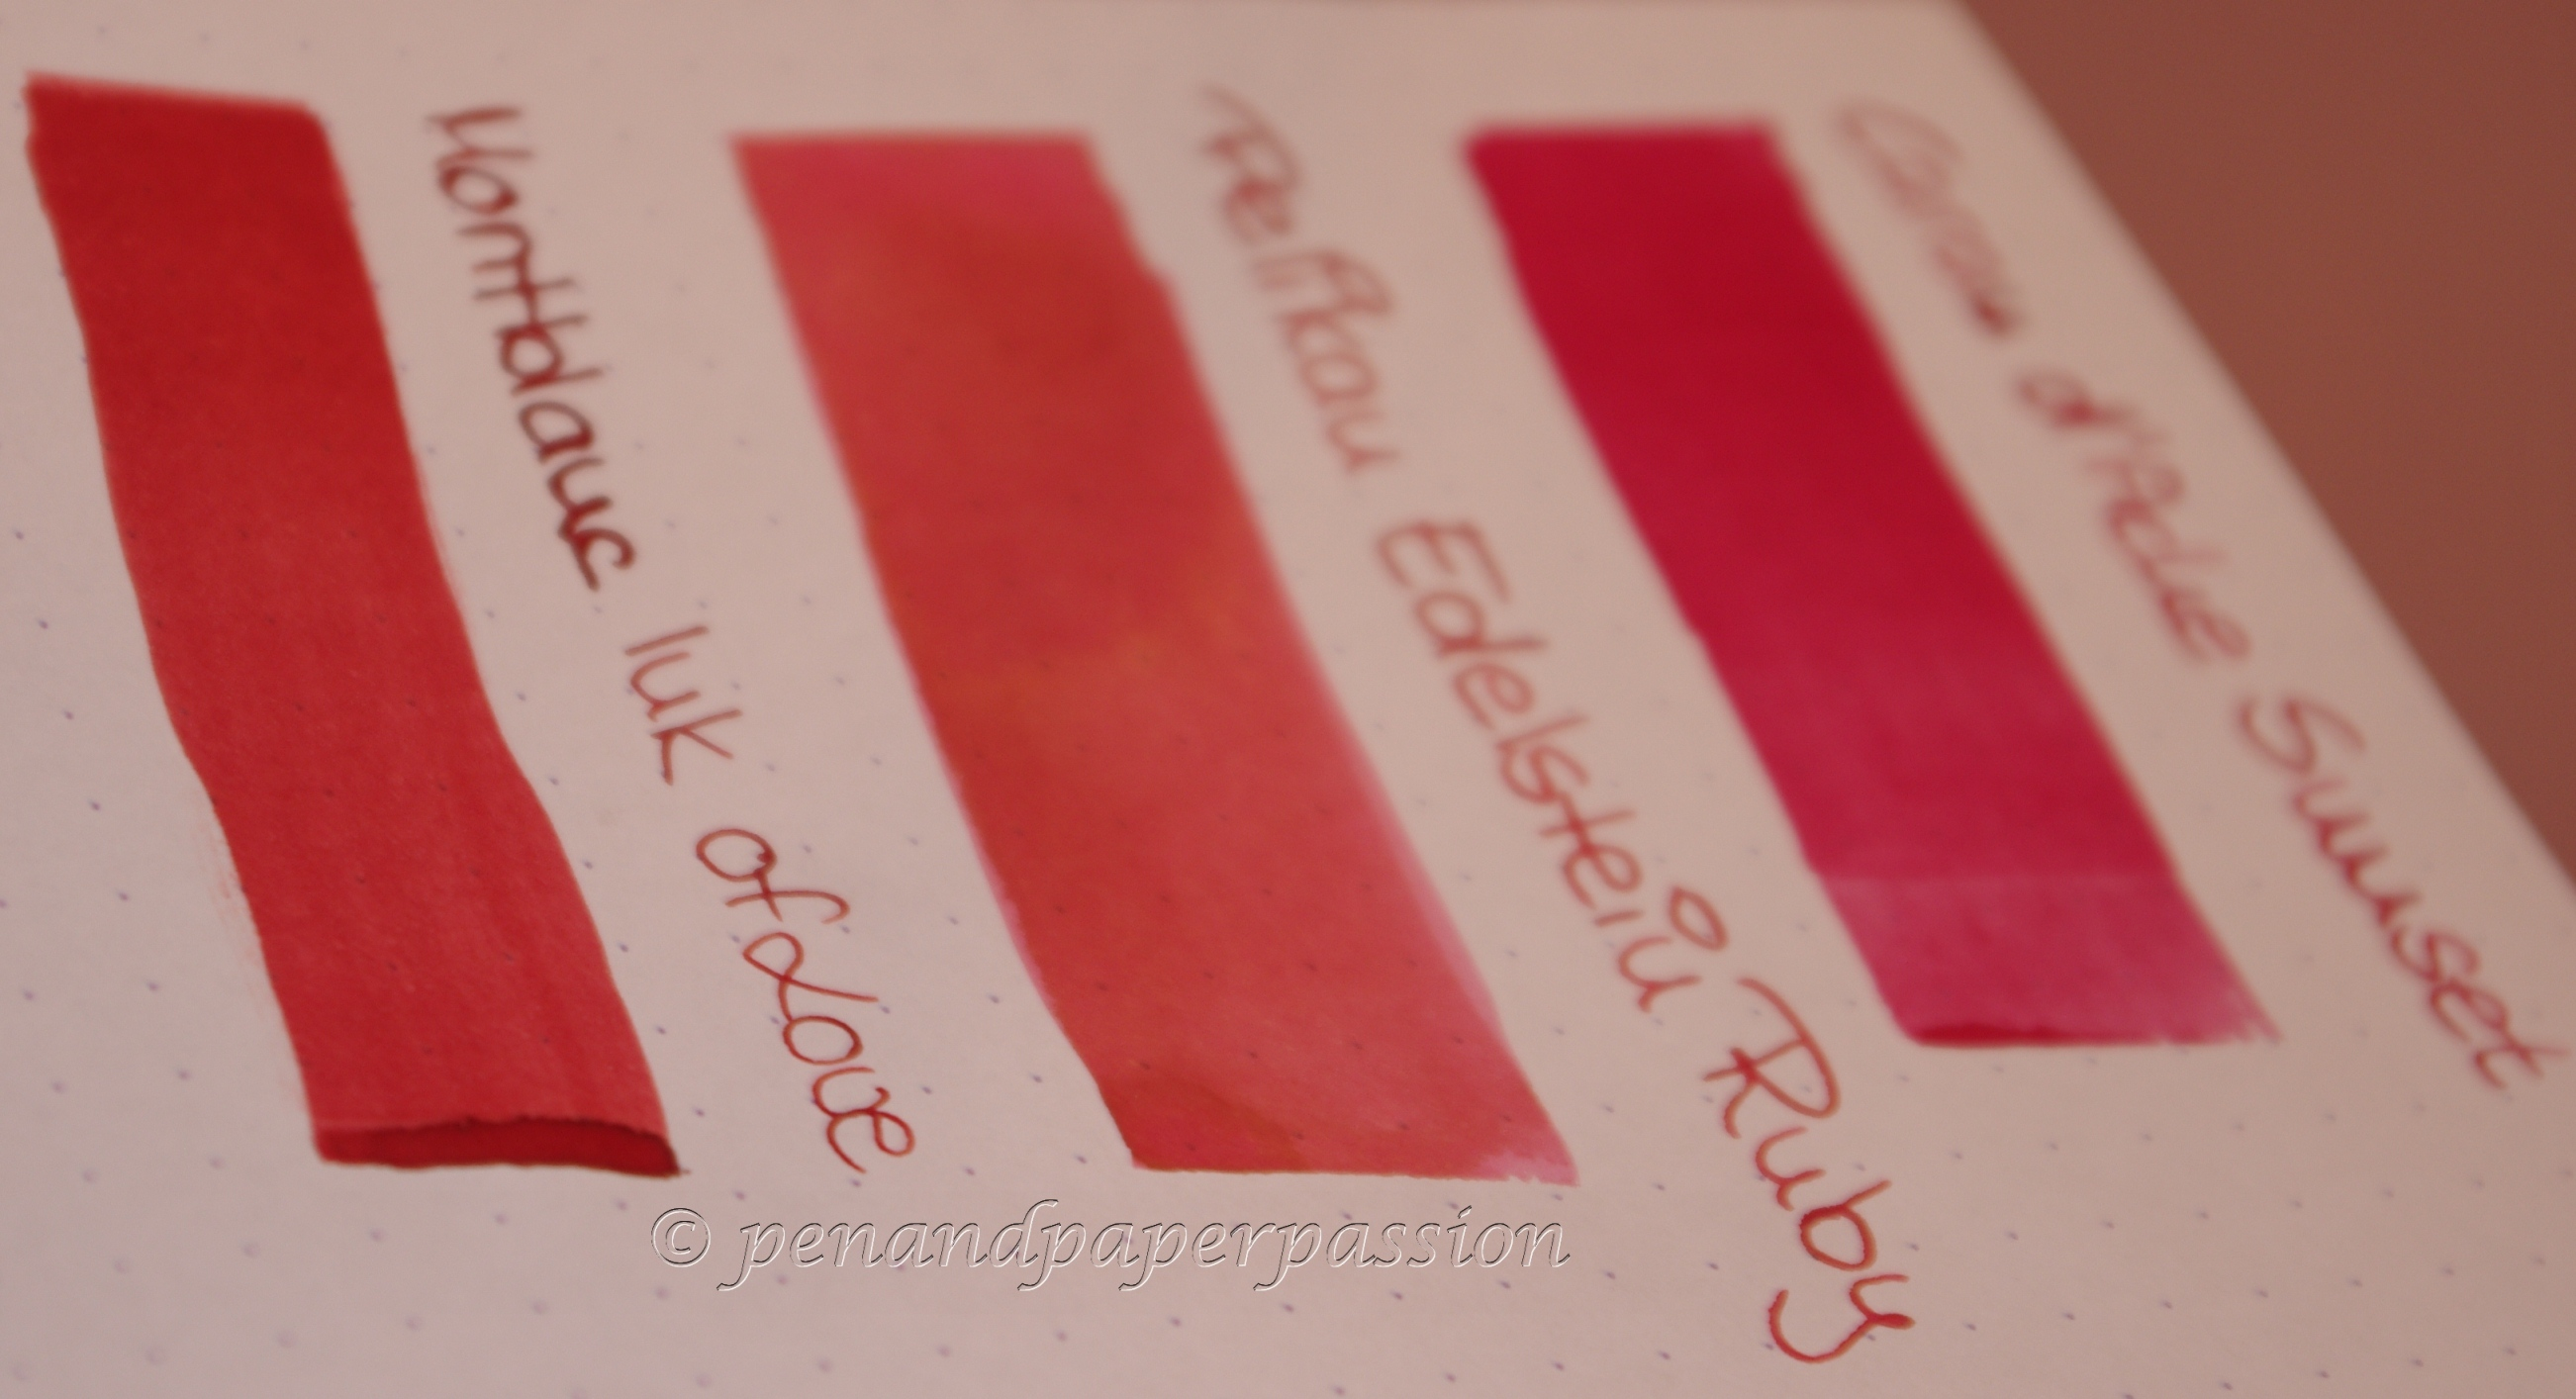 3 Rote - Caran d'Ache Sunset, Pelikan ES Ruby, MB Ink of Love 4